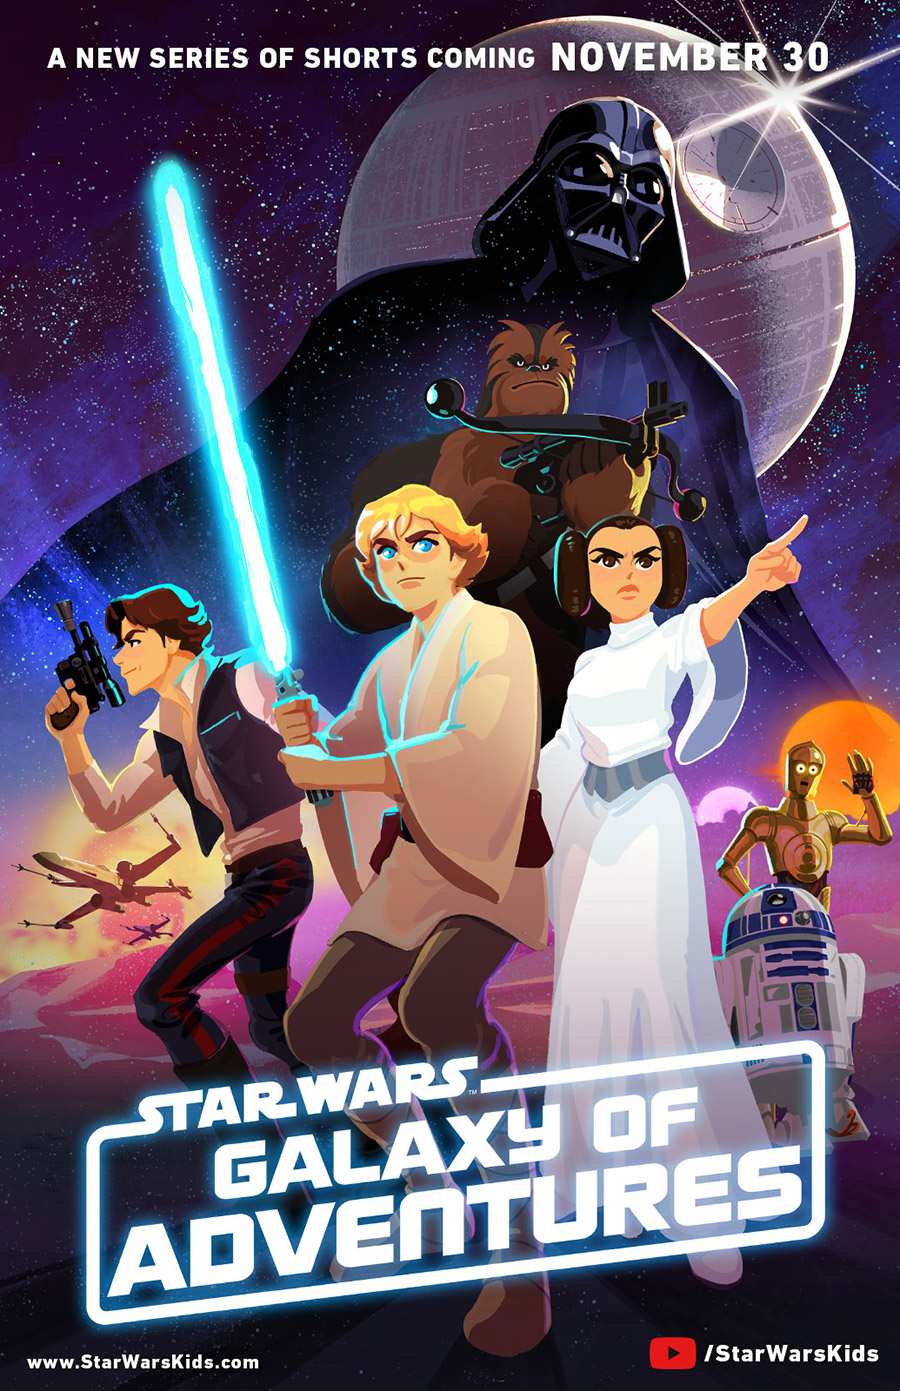 Poster art for Star Wars Galaxy of Adventures.